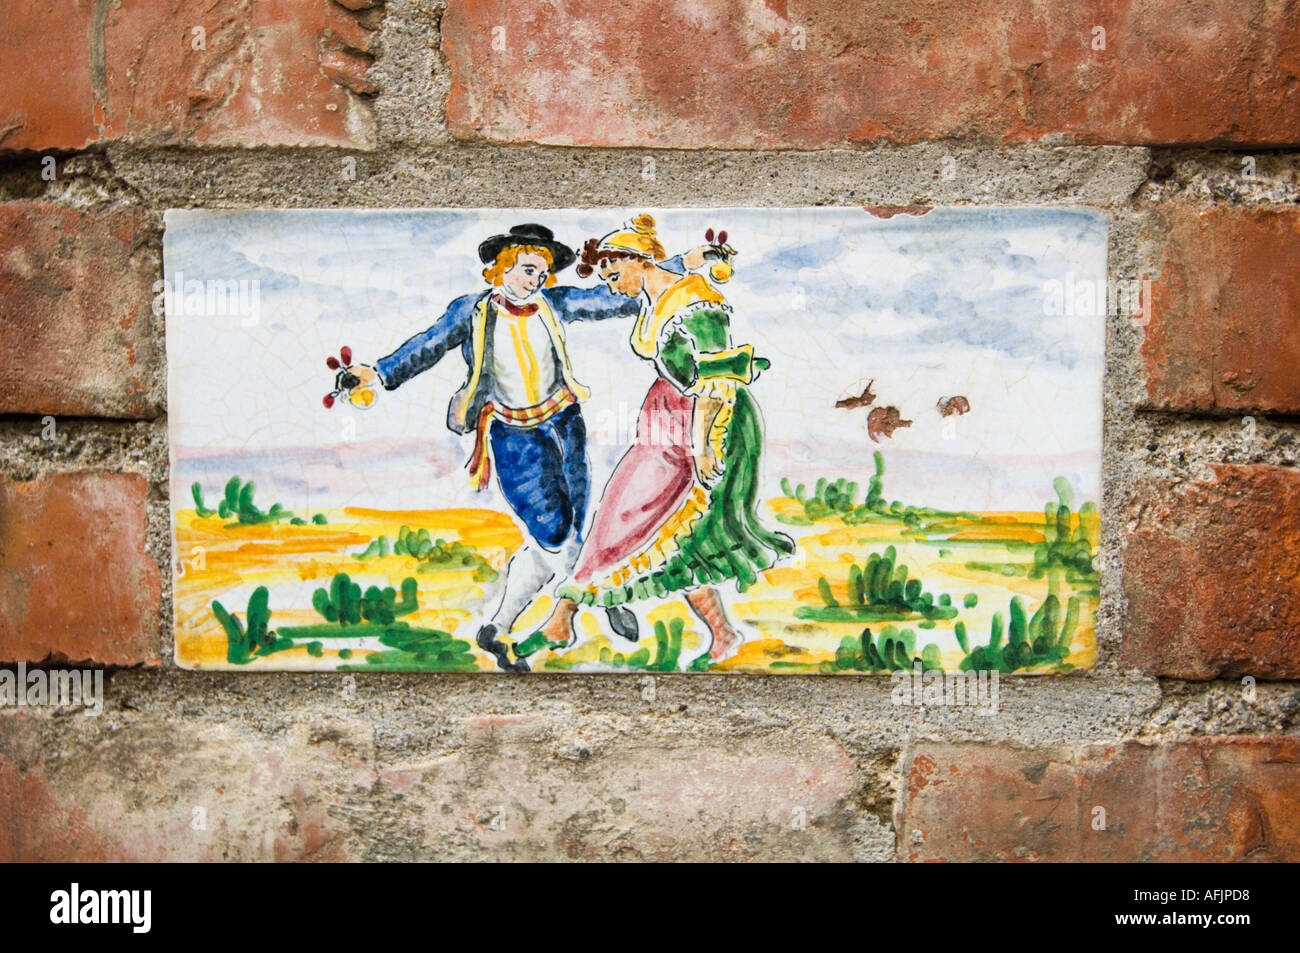 Delighted 12X24 Ceramic Tile Tall 1X1 Ceramic Tile Flat 2X4 Fiberglass Ceiling Tiles 3 X 6 Glass Subway Tile Youthful 3 X 6 White Subway Tile Green3X3 Ceramic Tile Hand Painted Ceramic Tile With Traditional Dancers Embedded In A ..